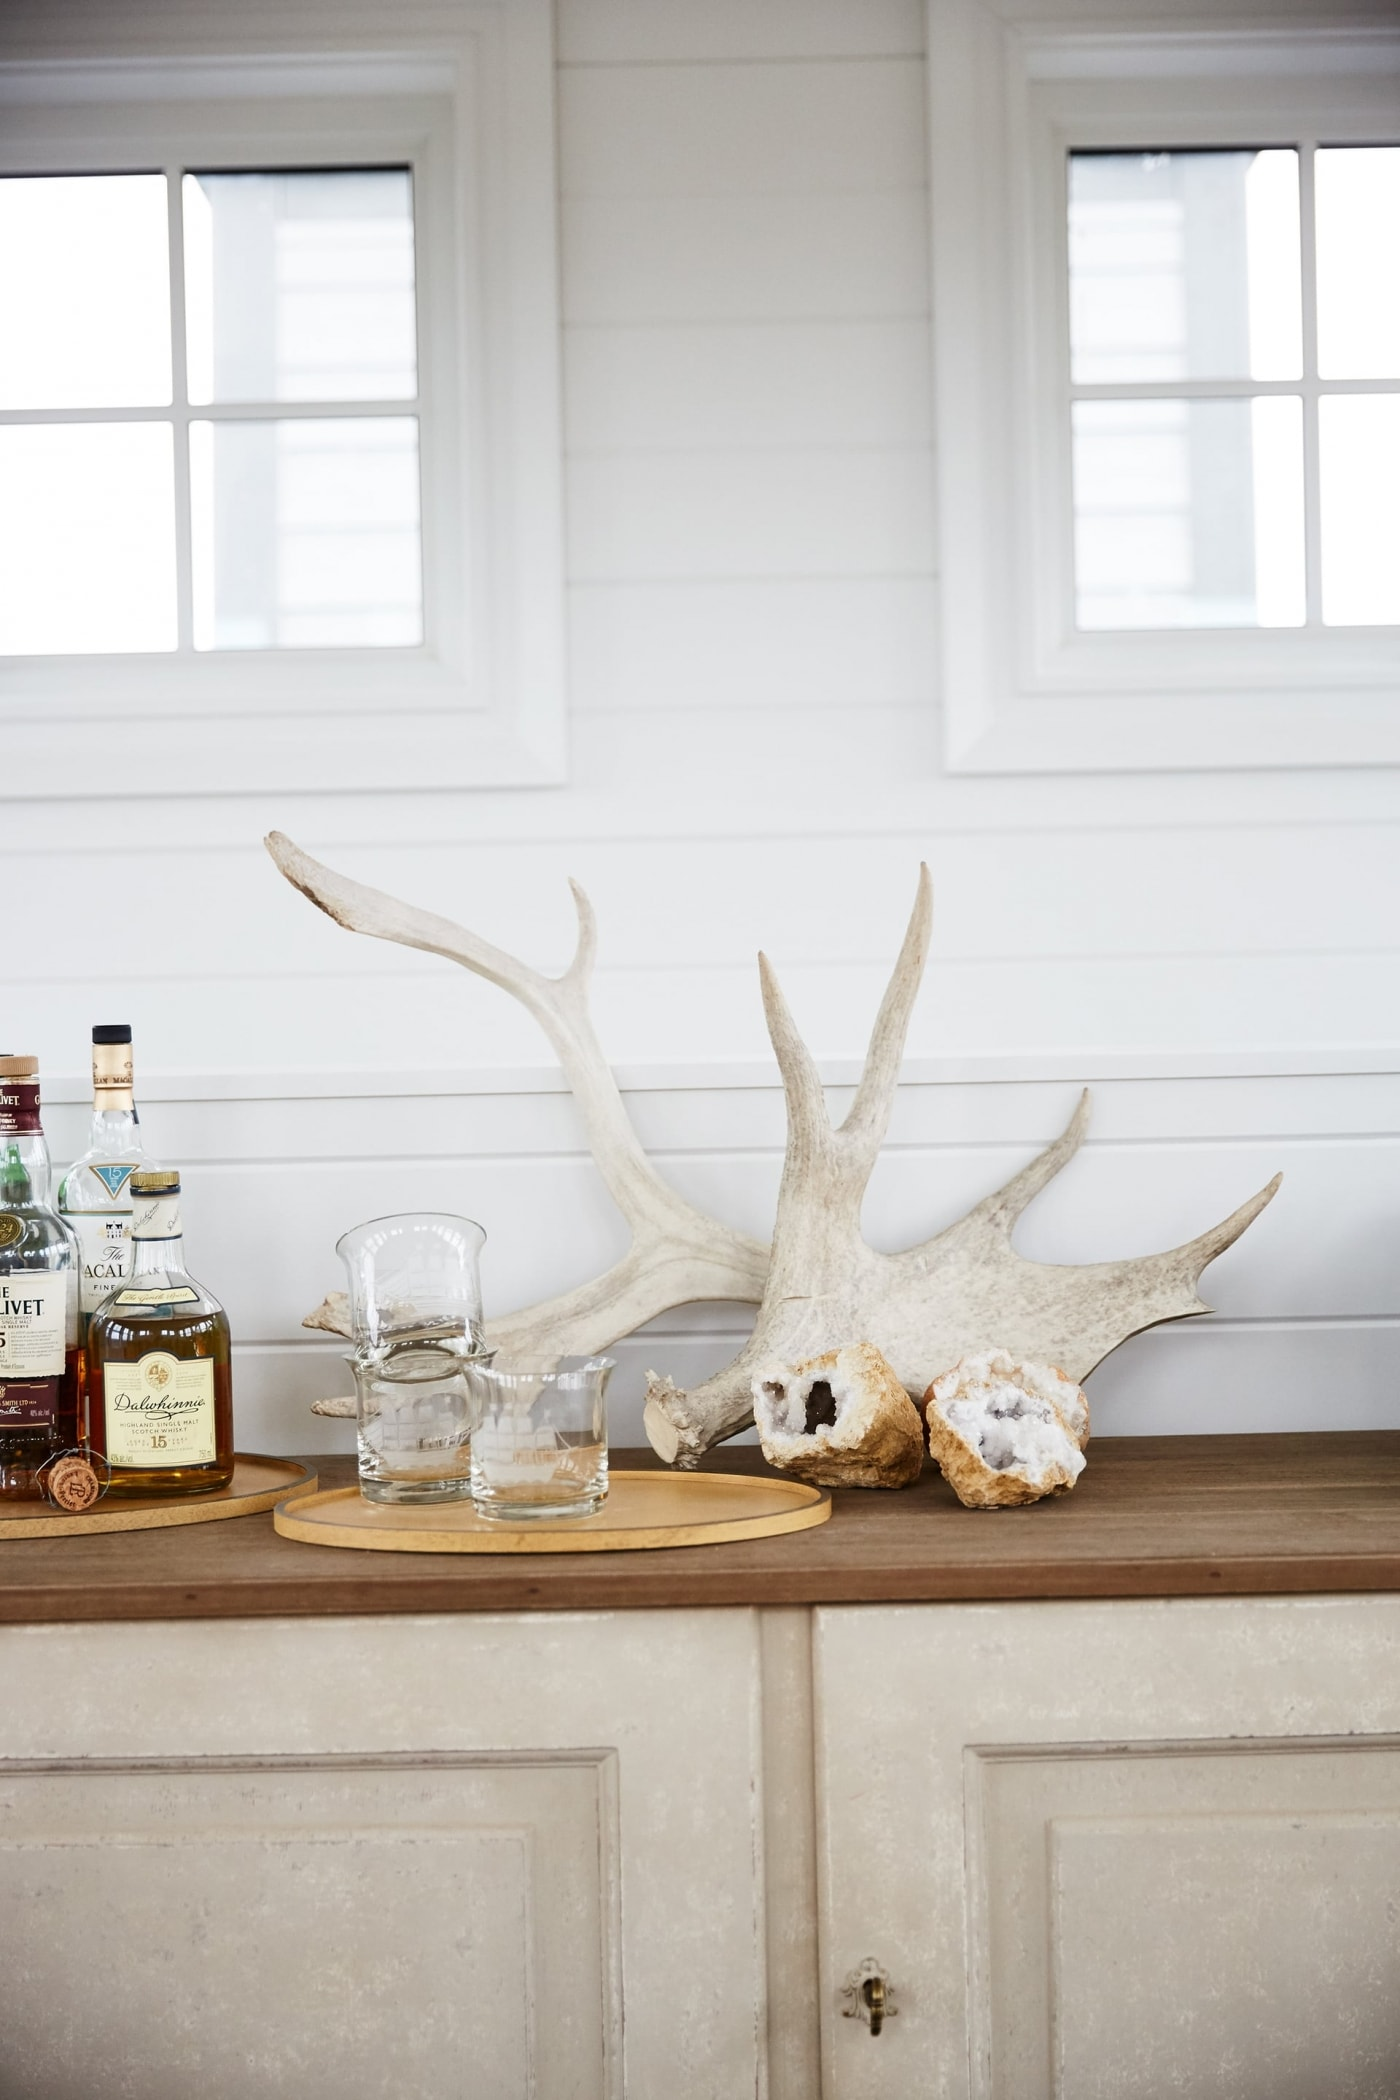 Belvedere - Sarah off the Grid. Shop the Room! Sarah Richardson {Belvedere Rooftop Gallery} #antlers #rusticdecor #SarahRichardson